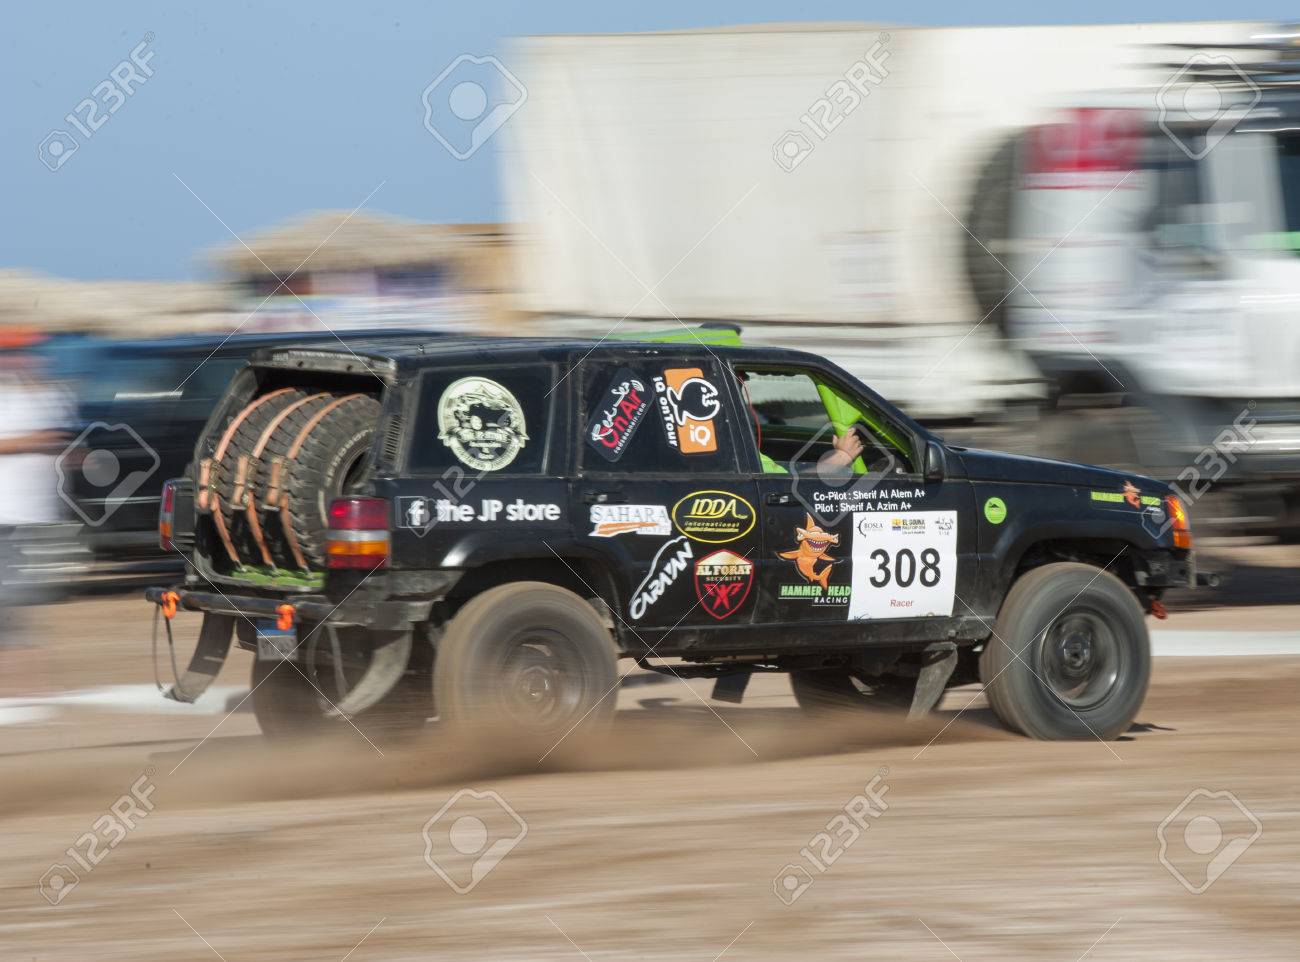 Hummer head rally Sponsored by redseaonair